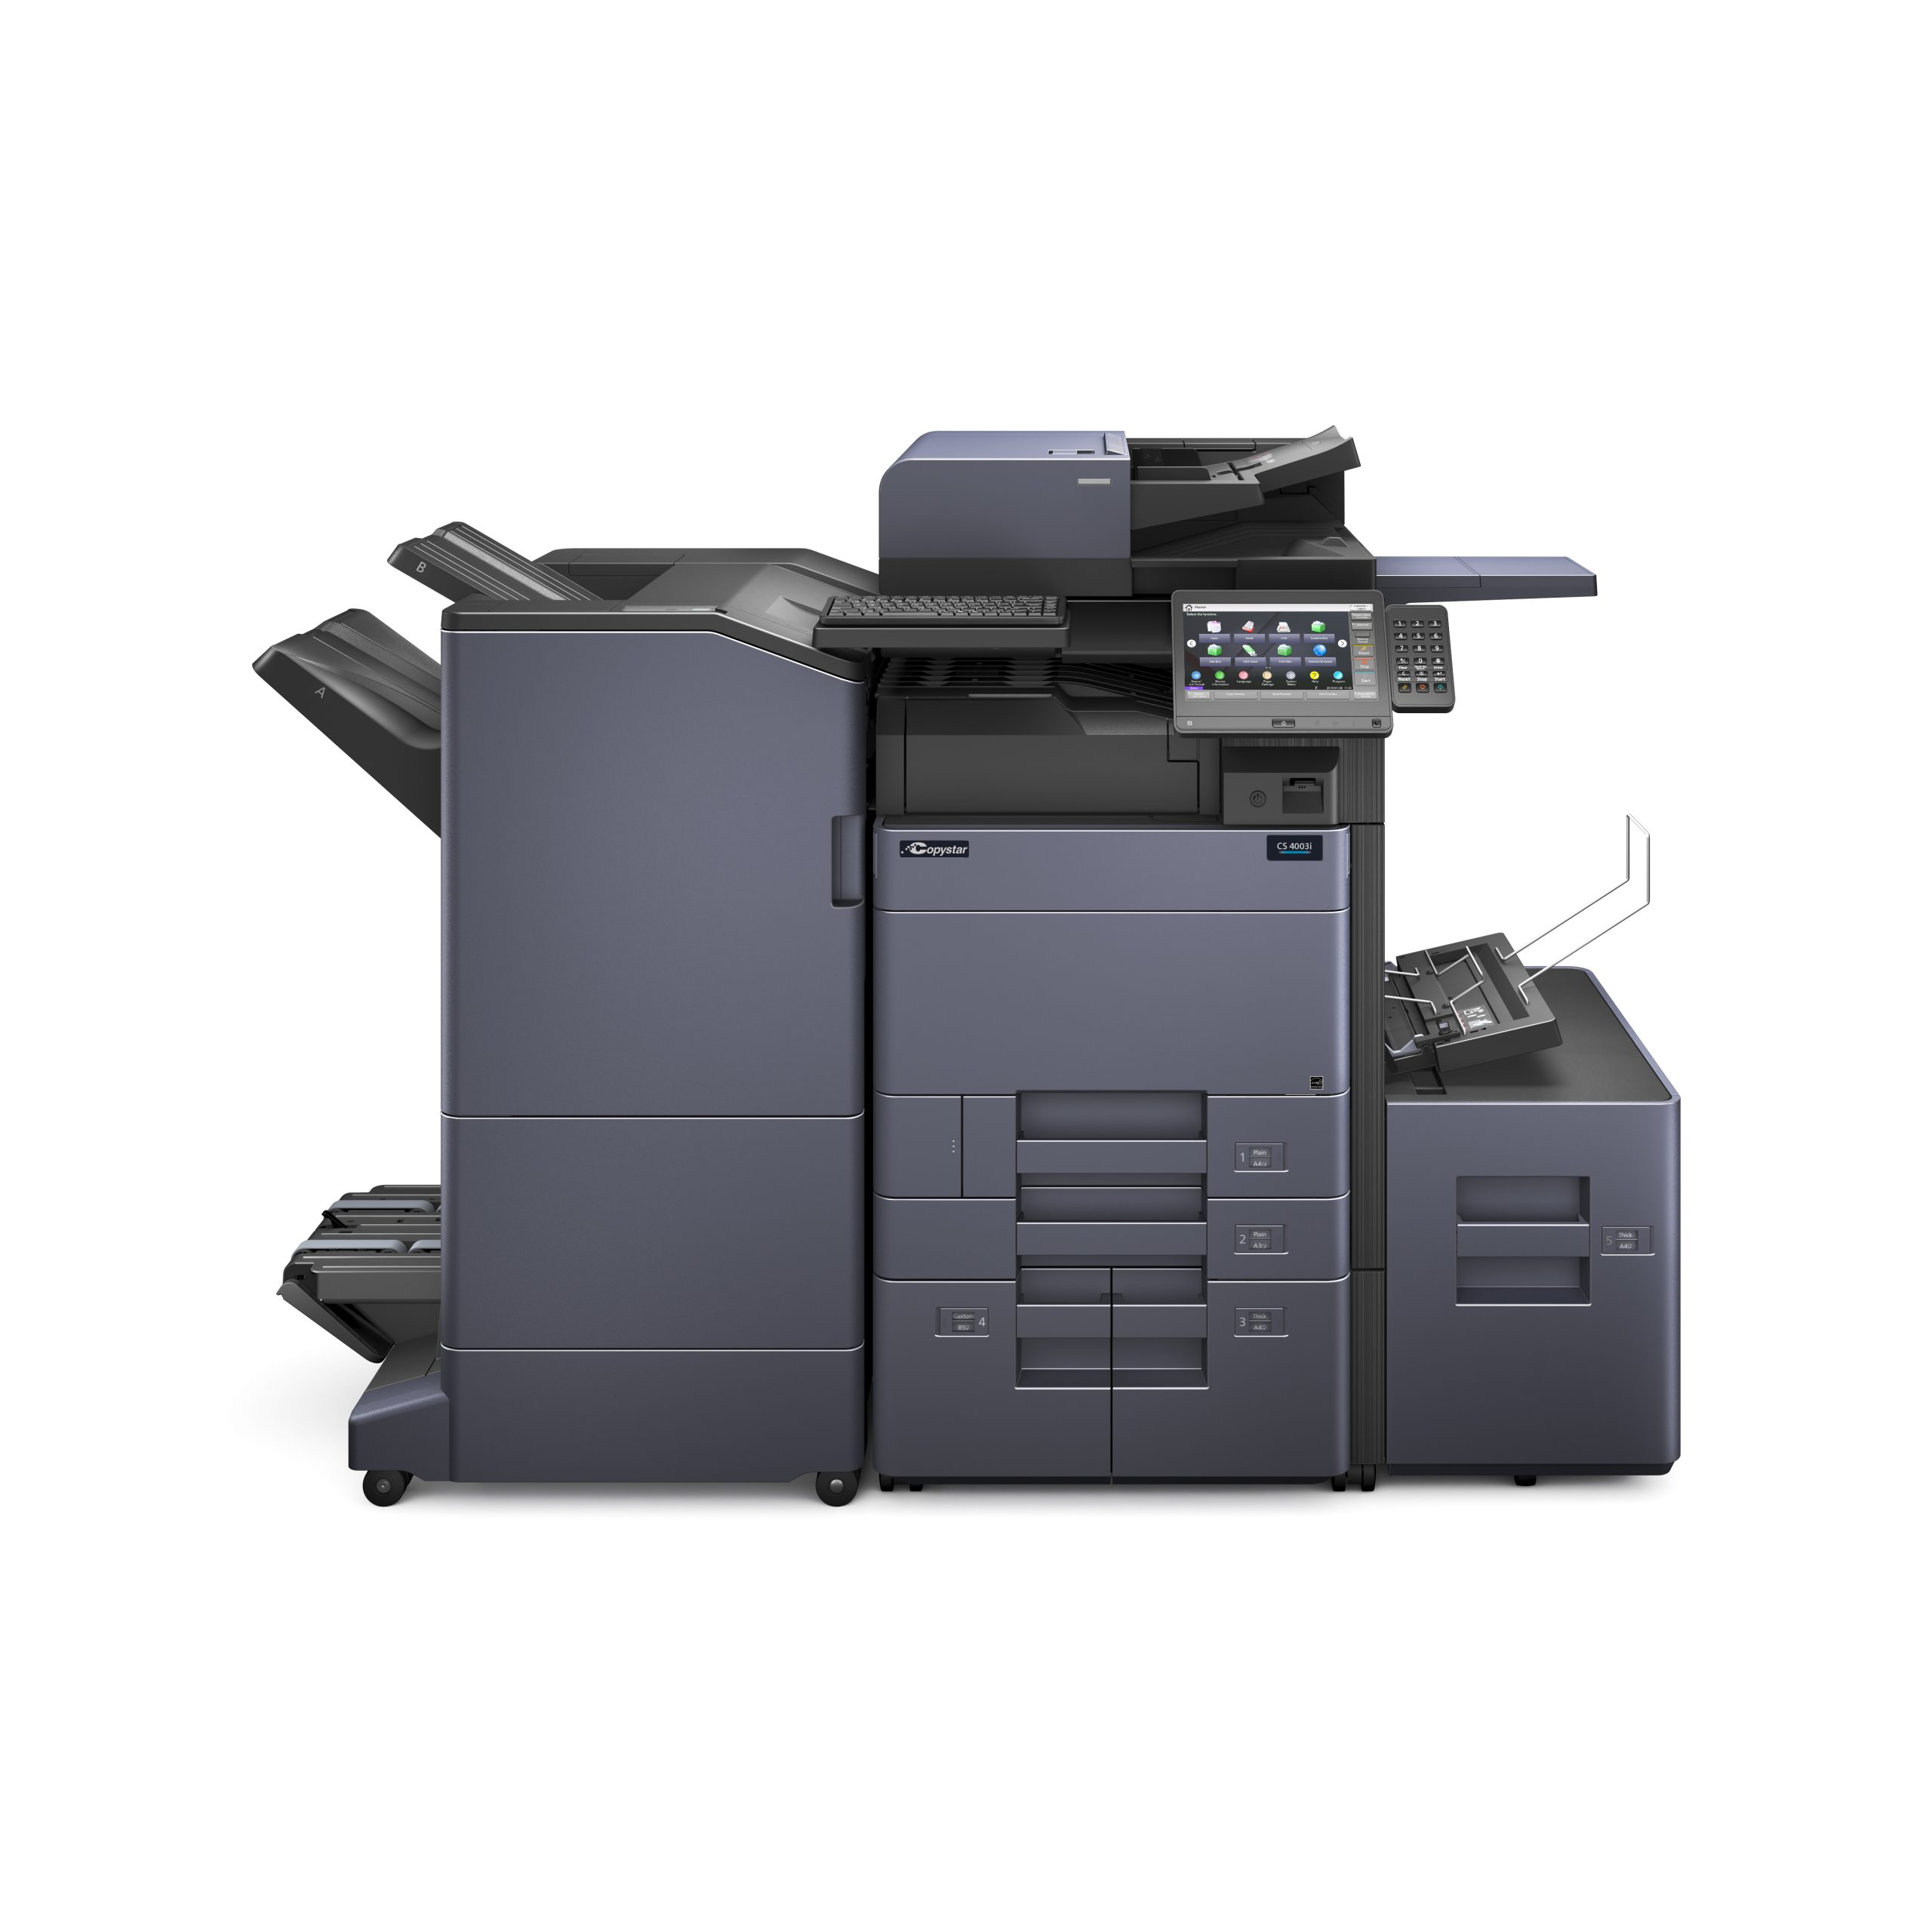 kyocera CS_4003i Color Copier Florida